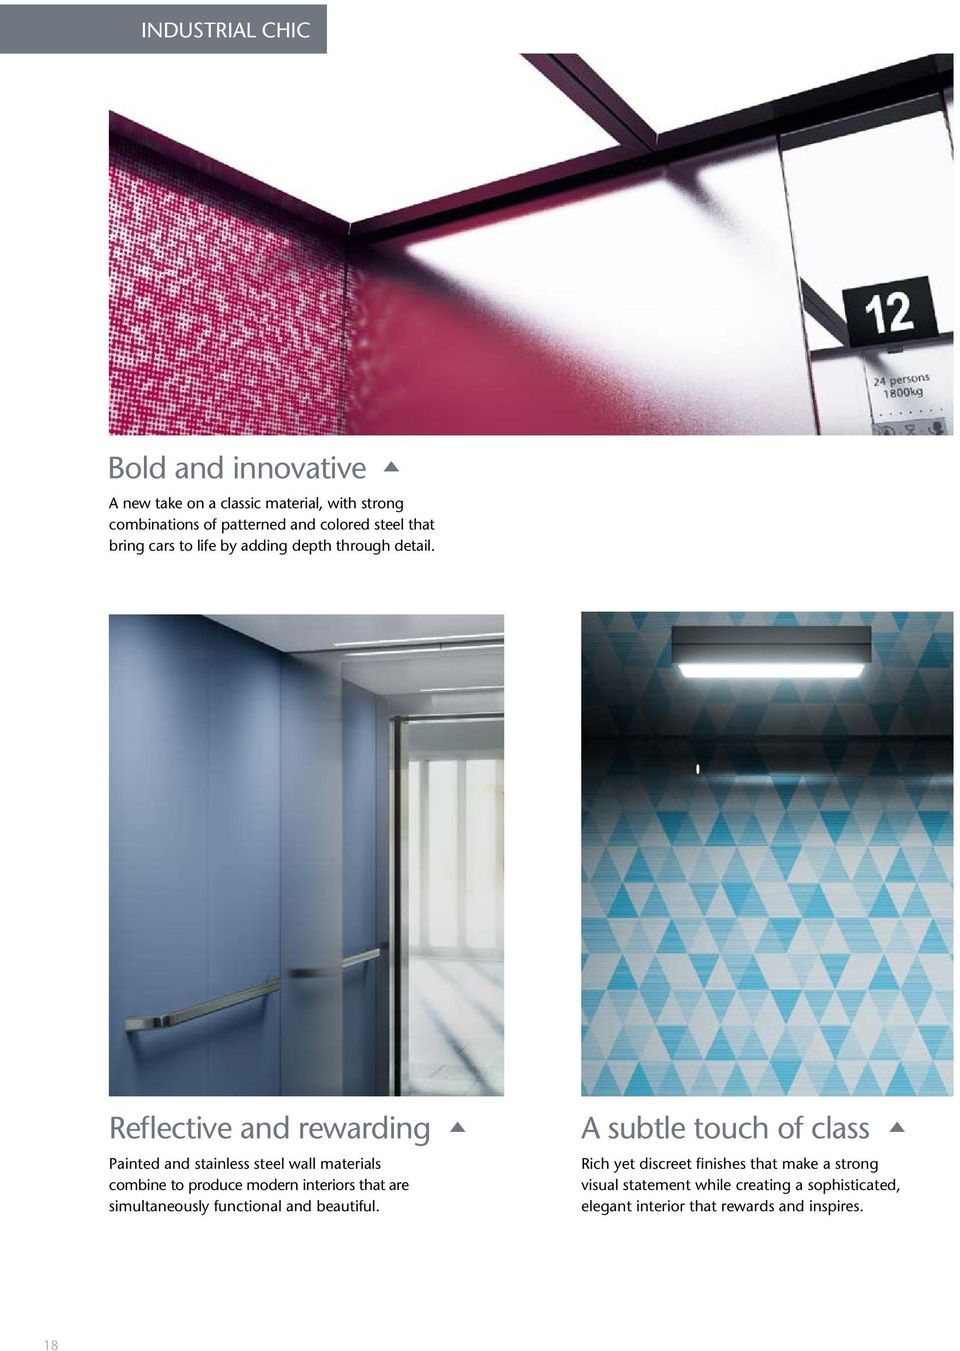 Reflective and rewarding Painted and stainless steel wall materials combine to produce modern interiors that are